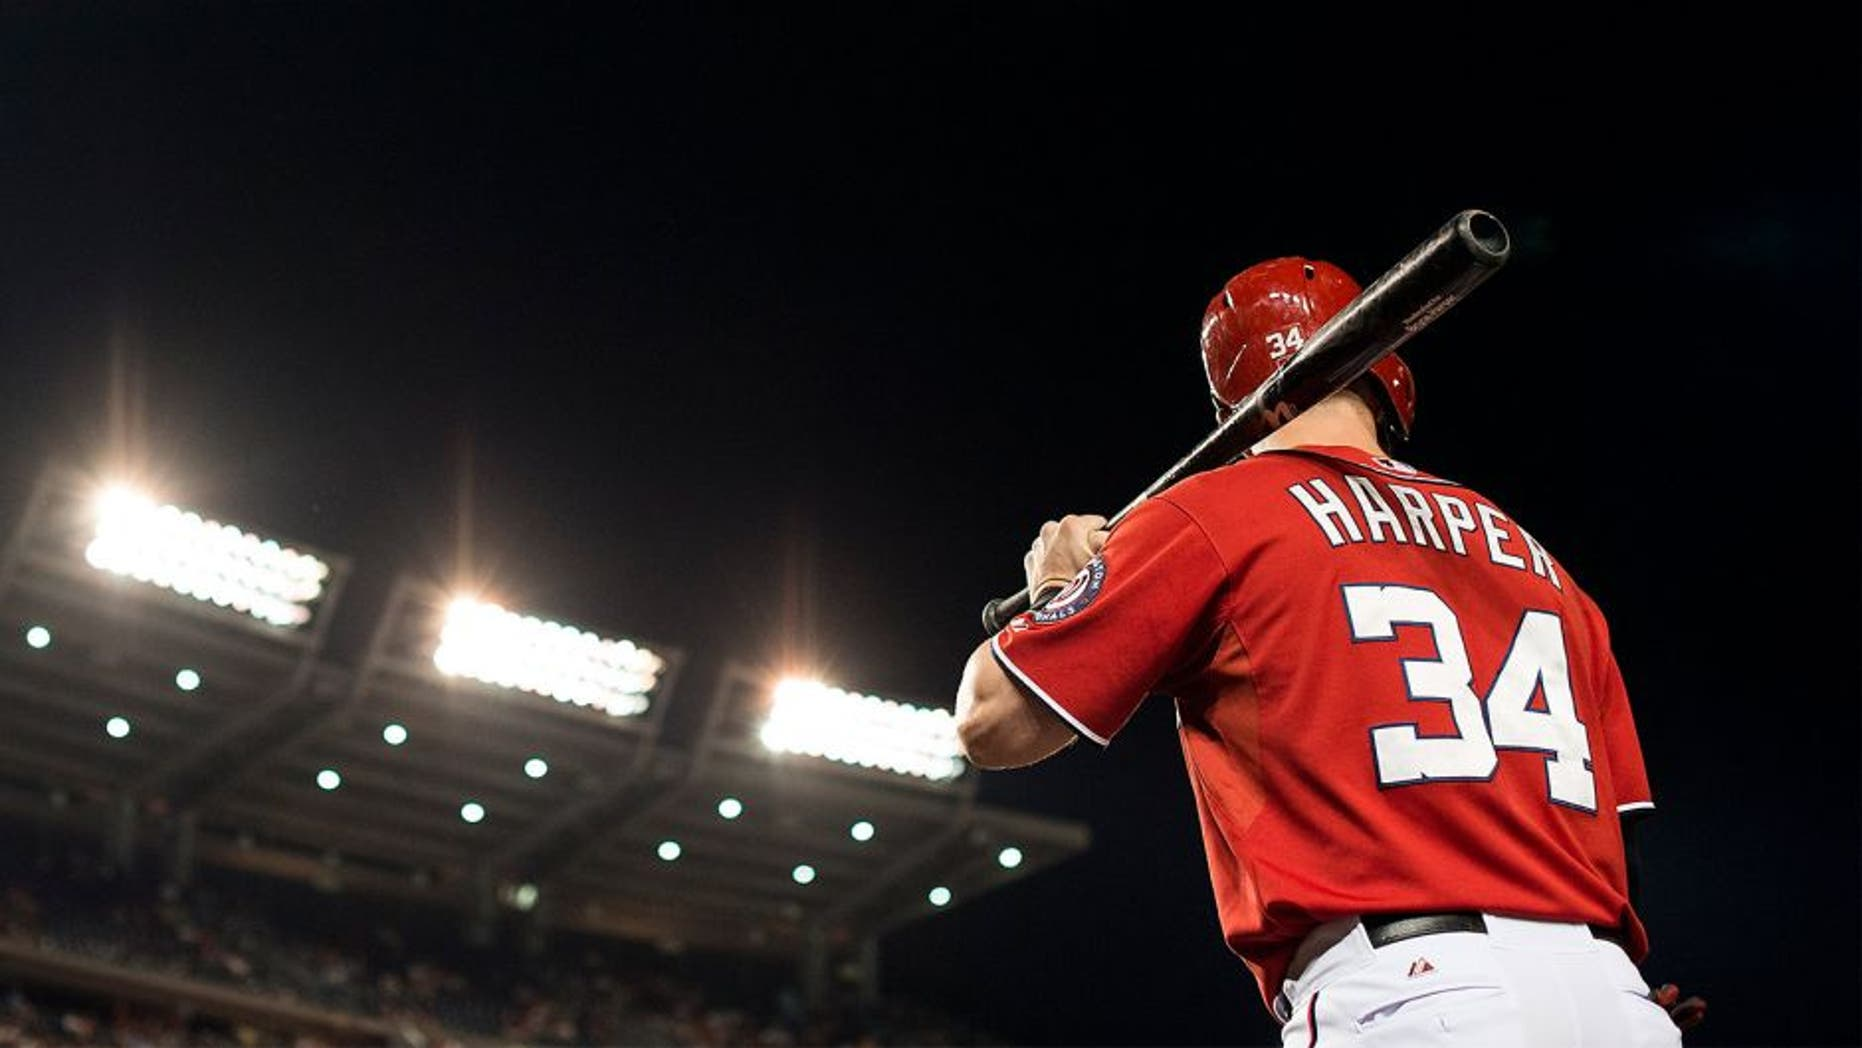 WASHINGTON, DC - AUGUST 22: Bryce Harper #34 of the Washington Nationals stands on deck before batting against the Milwaukee Brewers in the seventh inning of a baseball game at Nationals Park on August 22, 2015 in Washington, DC. (Photo by Patrick McDermott/Washington Nationals/Getty Images)